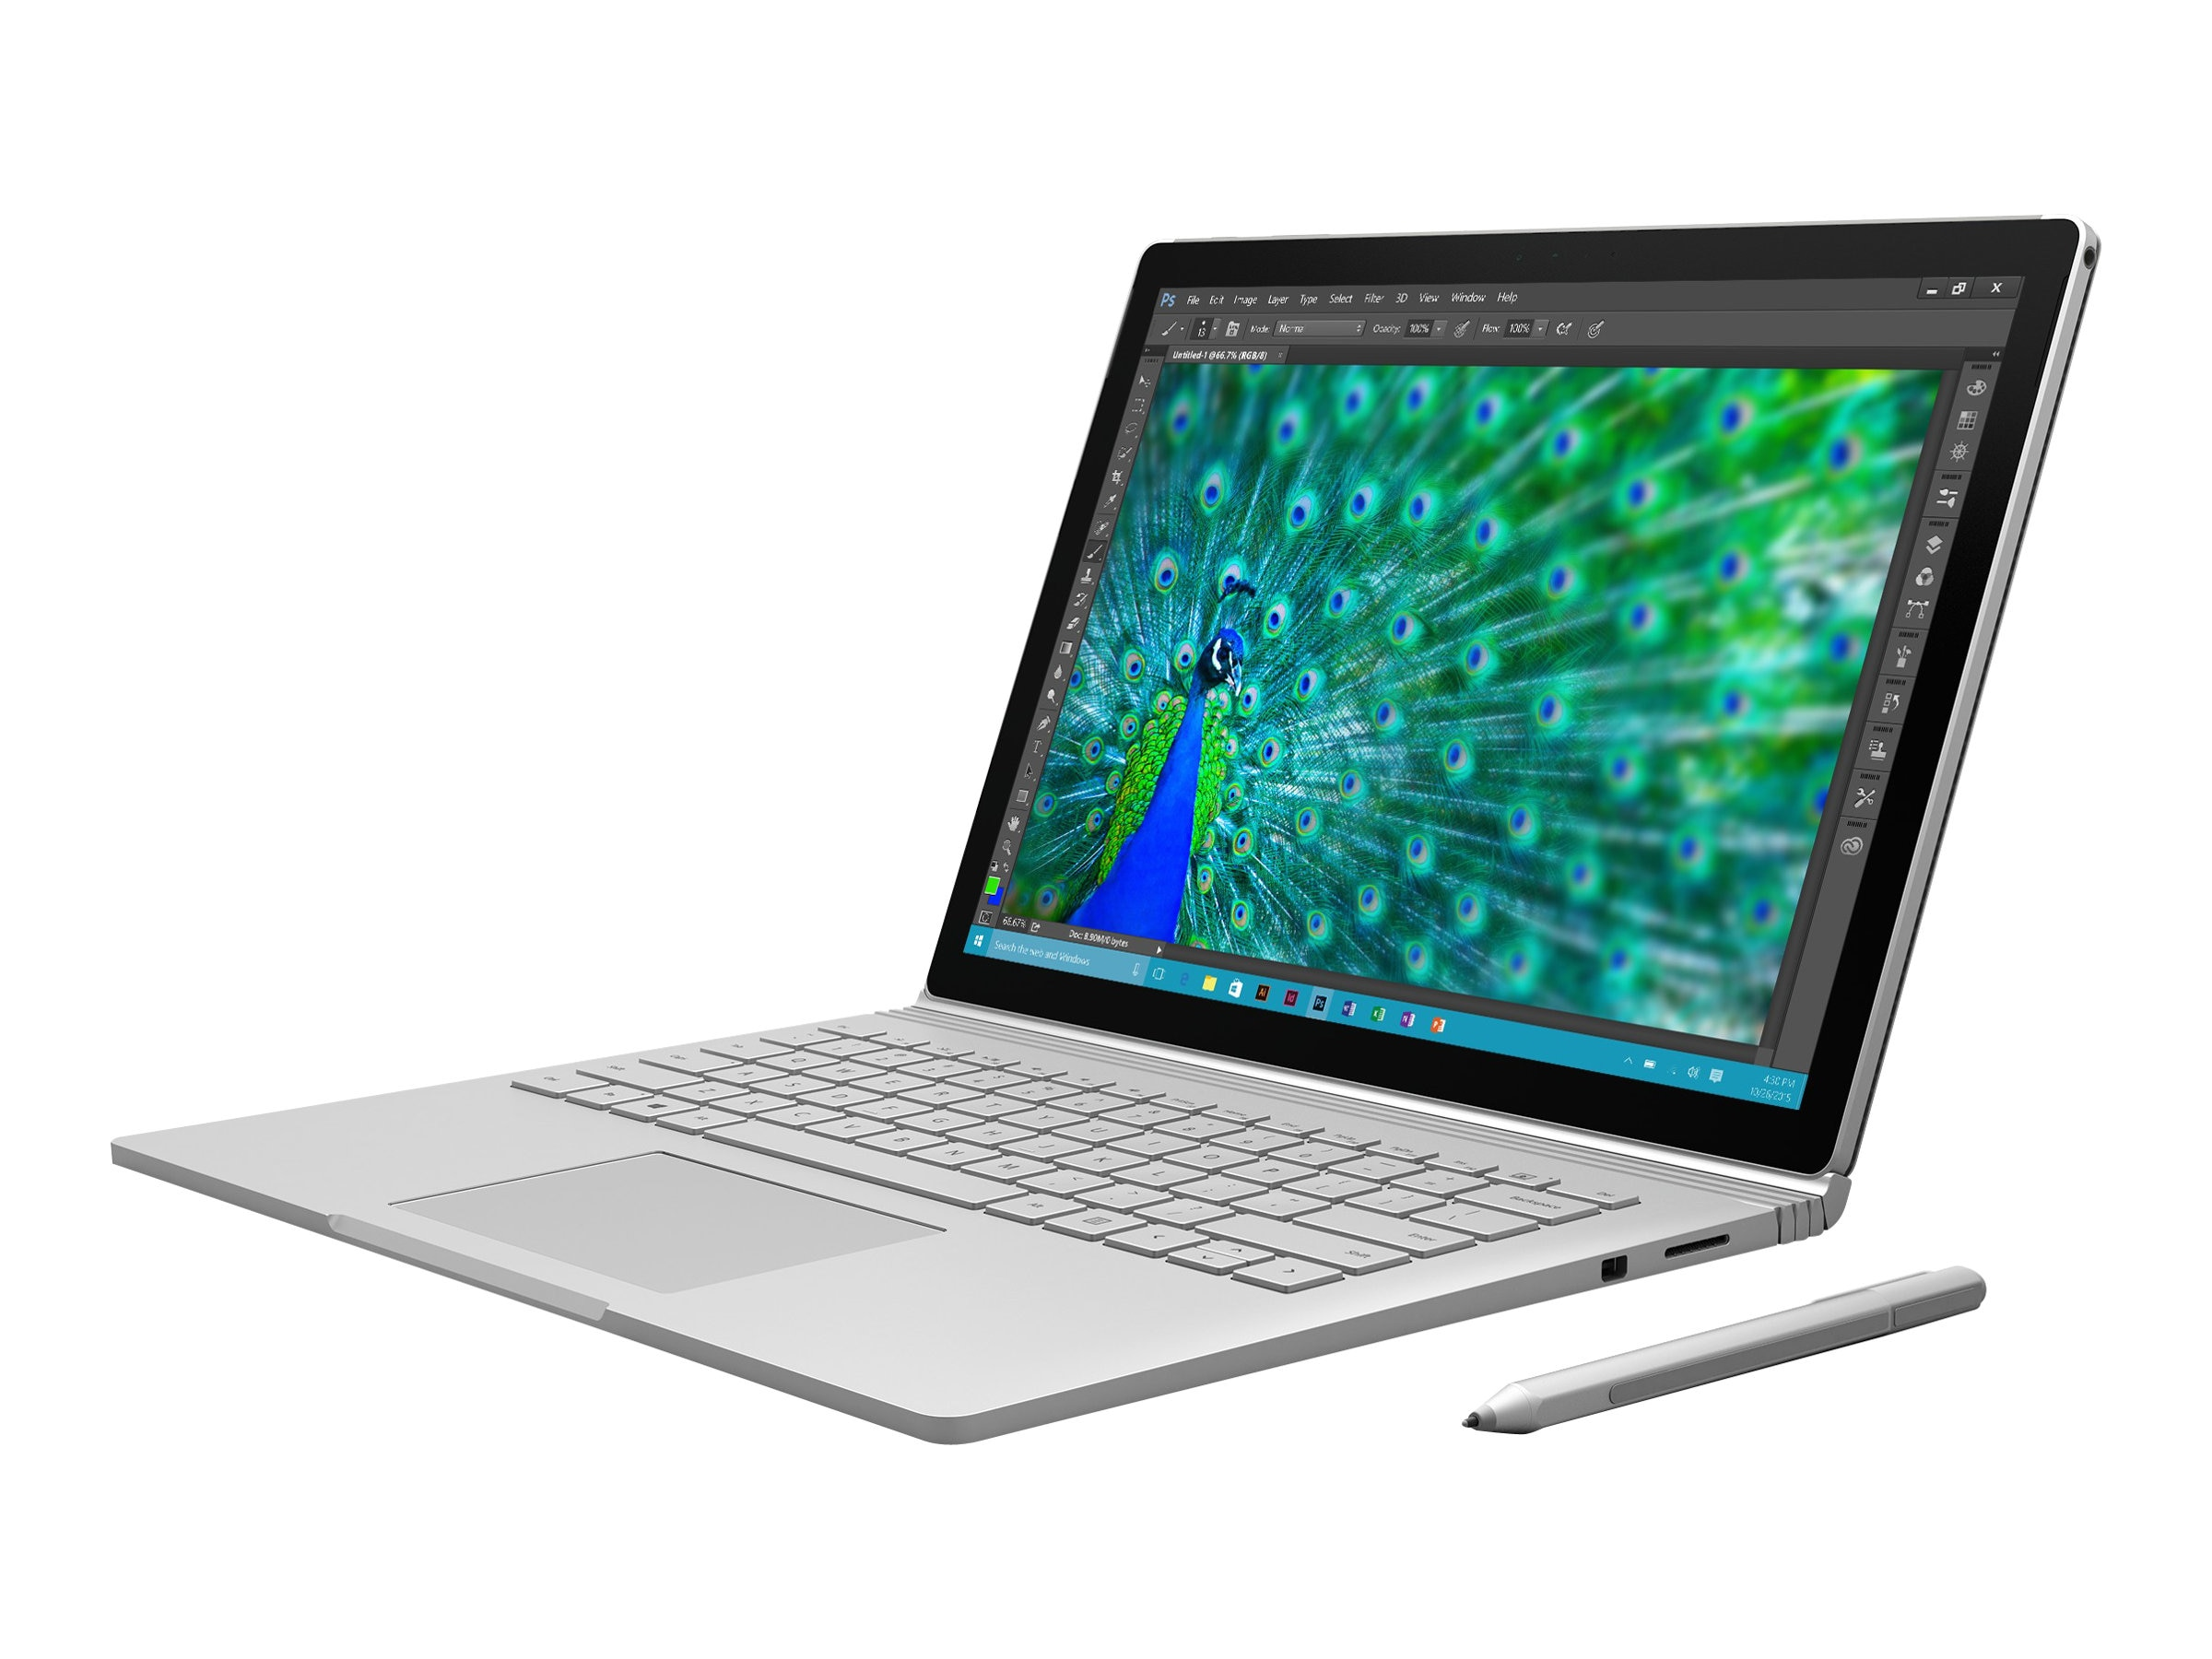 Microsoft Surface Book Core i5 dGPU 8GB 256GB, TP4-00001, 30734224, Notebooks - Convertible